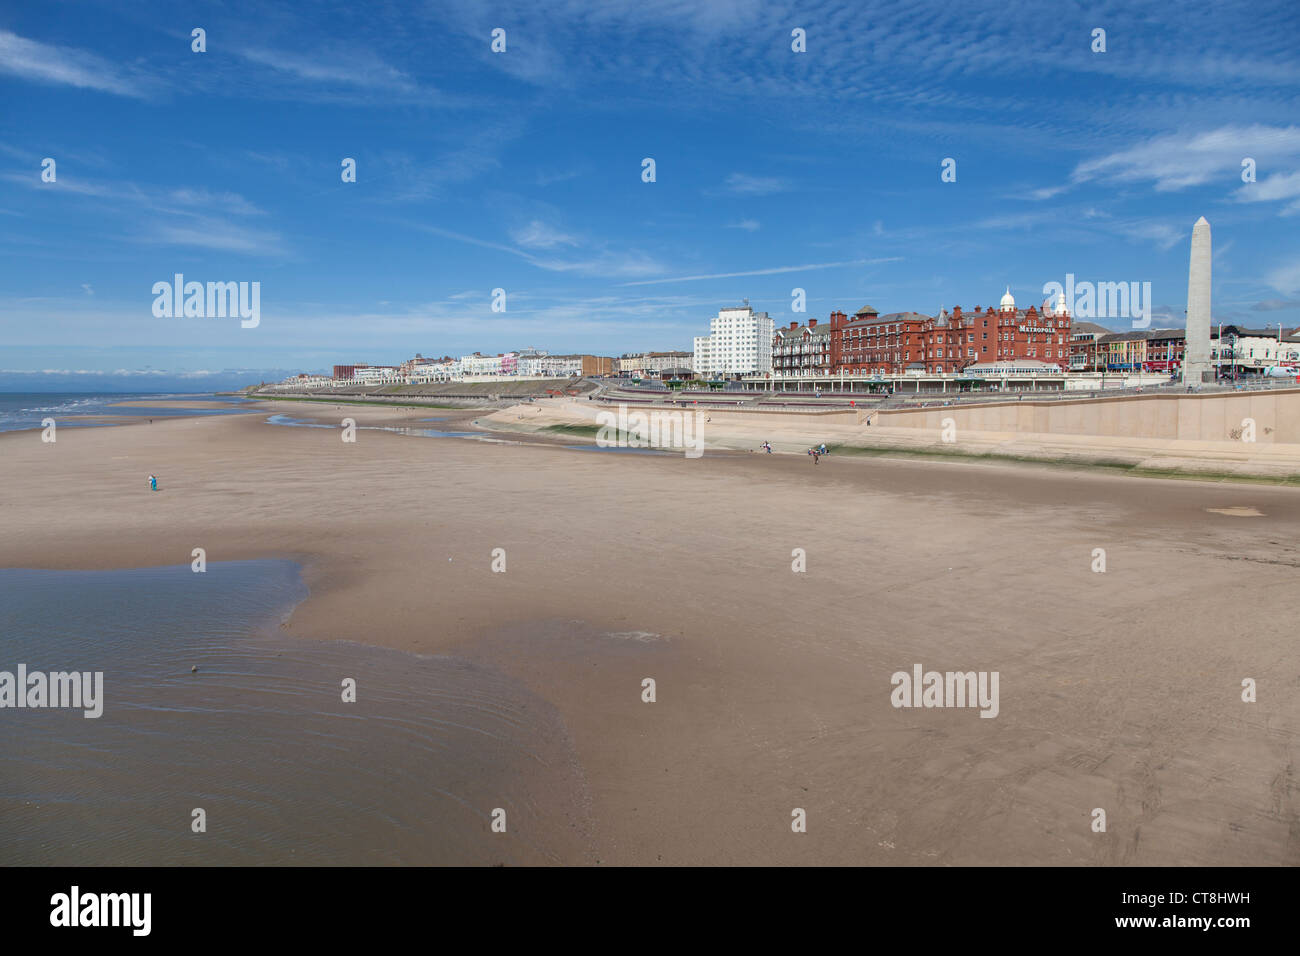 Deserted beach, Blackpool - Stock Image